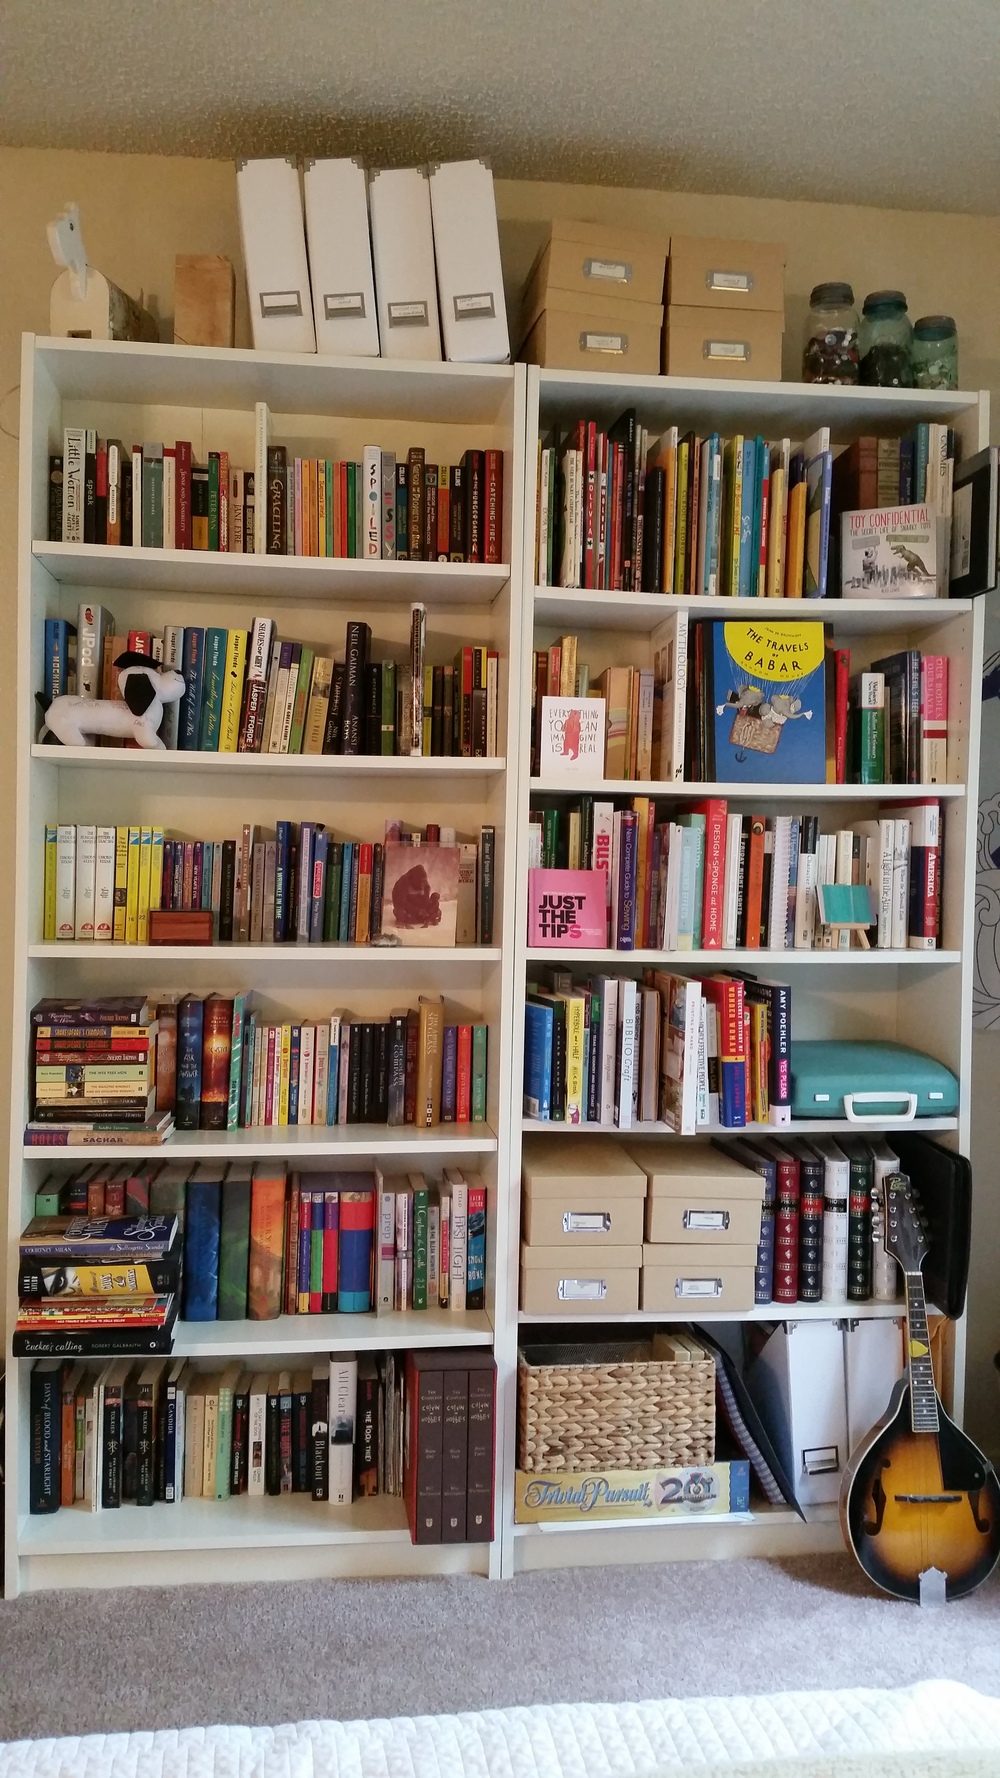 Allison's #TWILshelfie